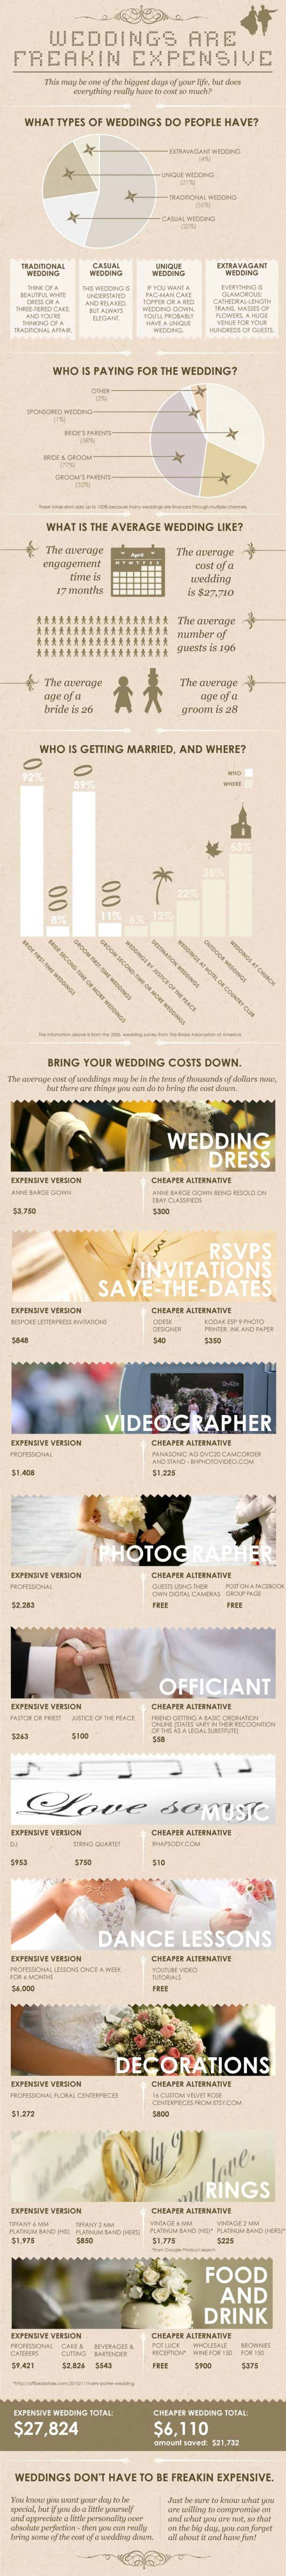 Cheaper tricks to make your wedding less expensive- Wow this is soooo interesting!!!